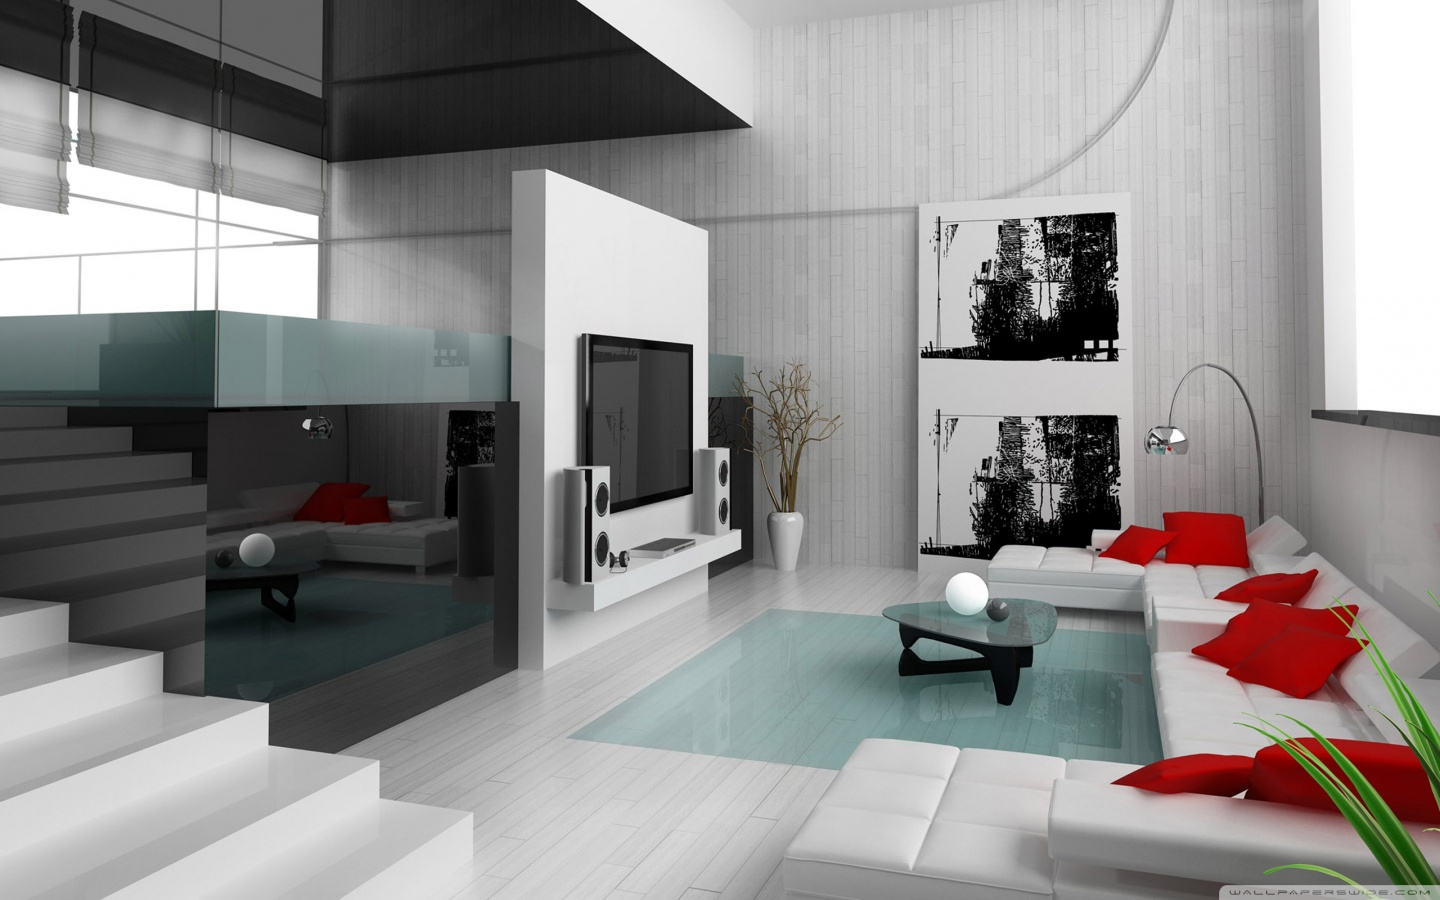 Minimalist interior design imagination art architecture for Home decor minimalist modern